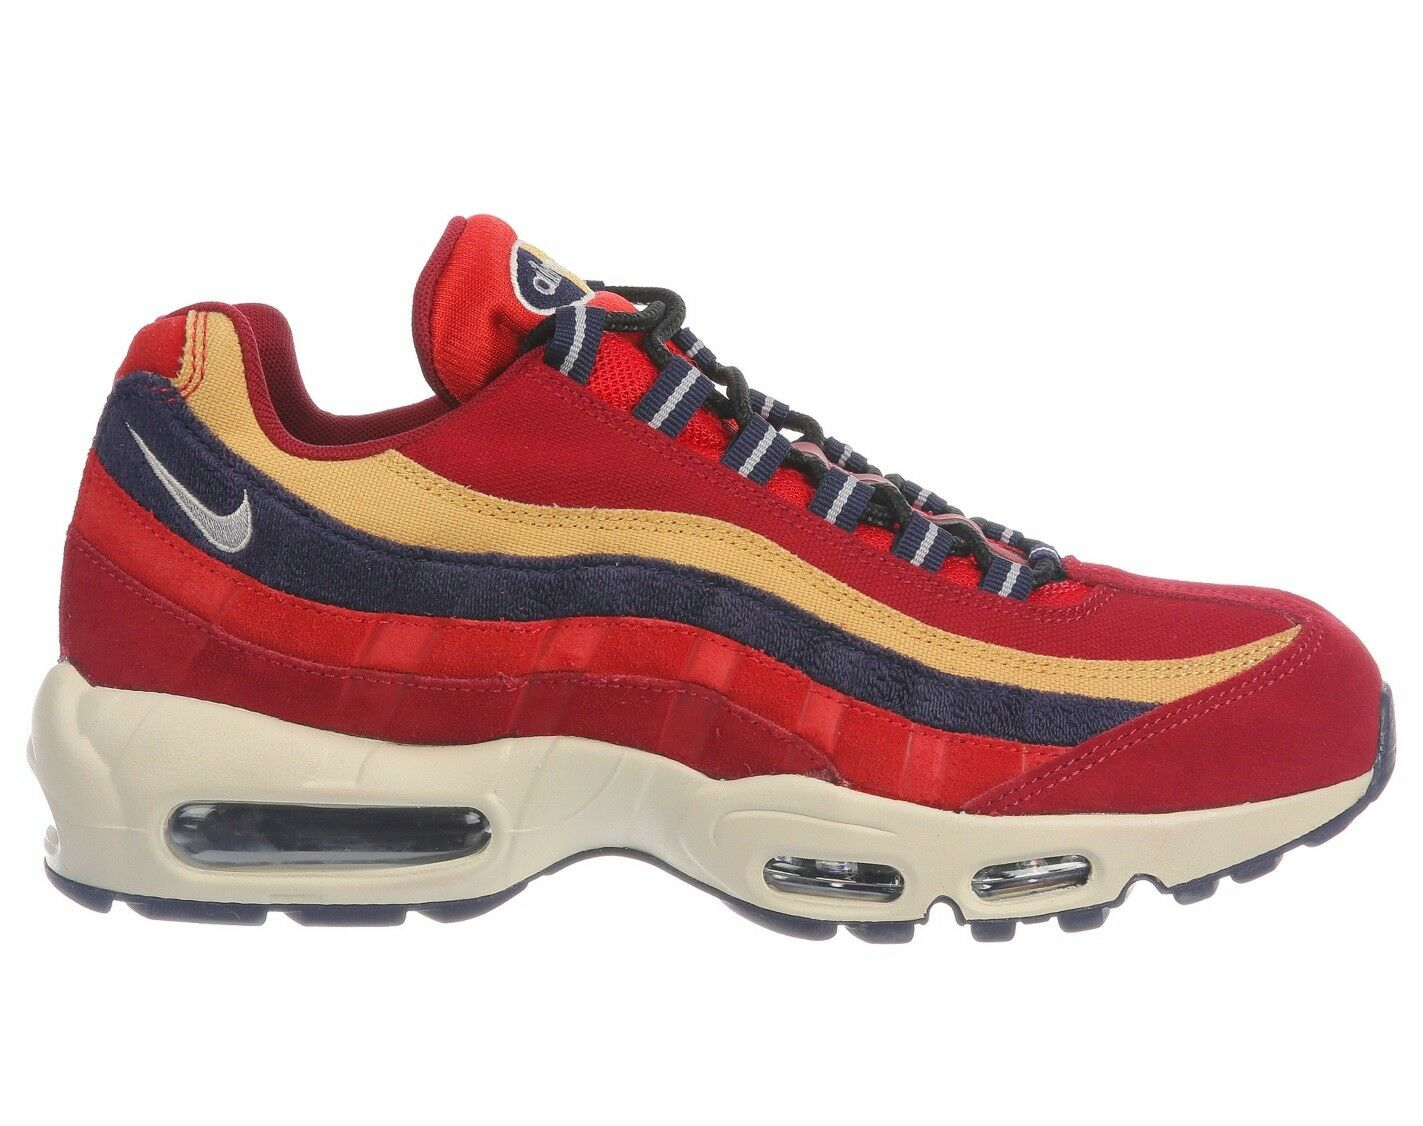 Nike Air Max 95 Premium Mens 538416-603 Red Purple Wheat Running Shoes Comfortable Great discount